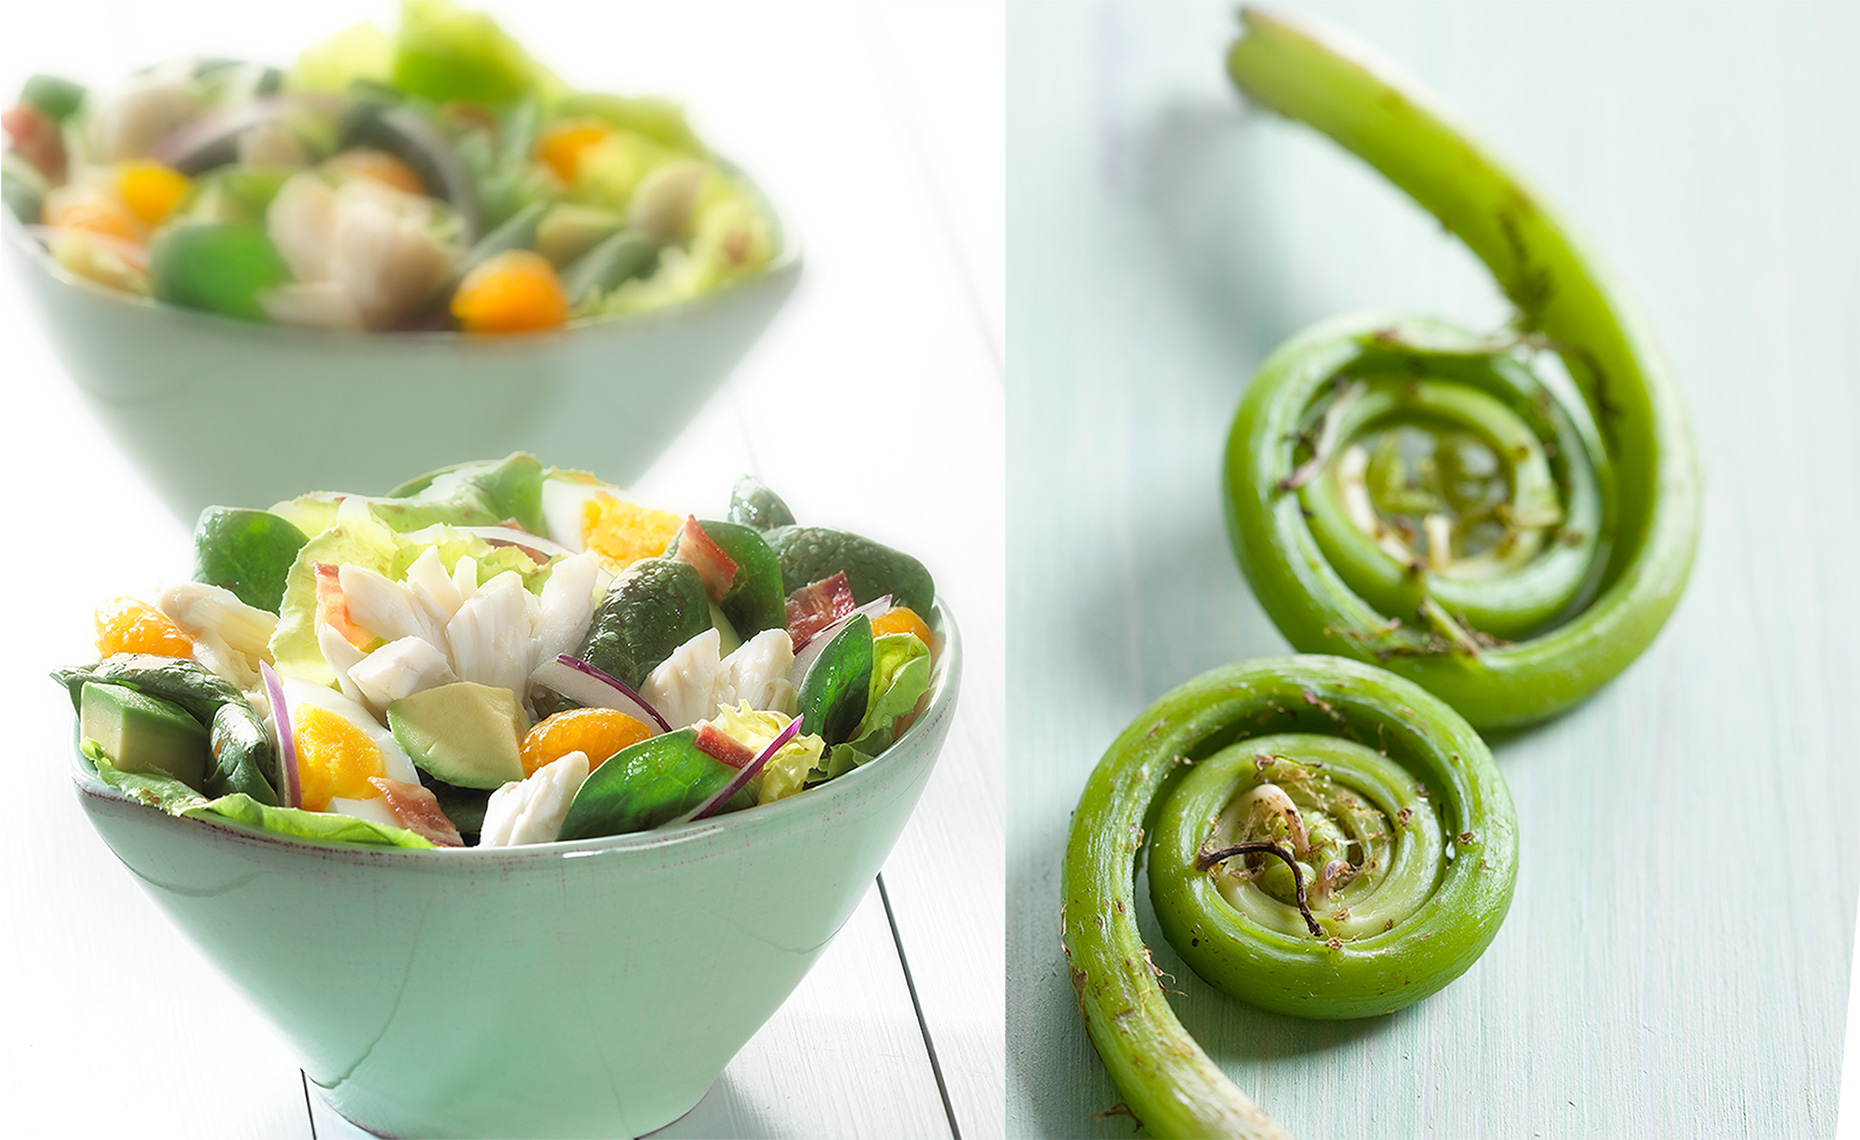 Food Photographer, Vegetable photography, Fruit photography | Pohuski Studios,  Crab Salad Fiddleheads